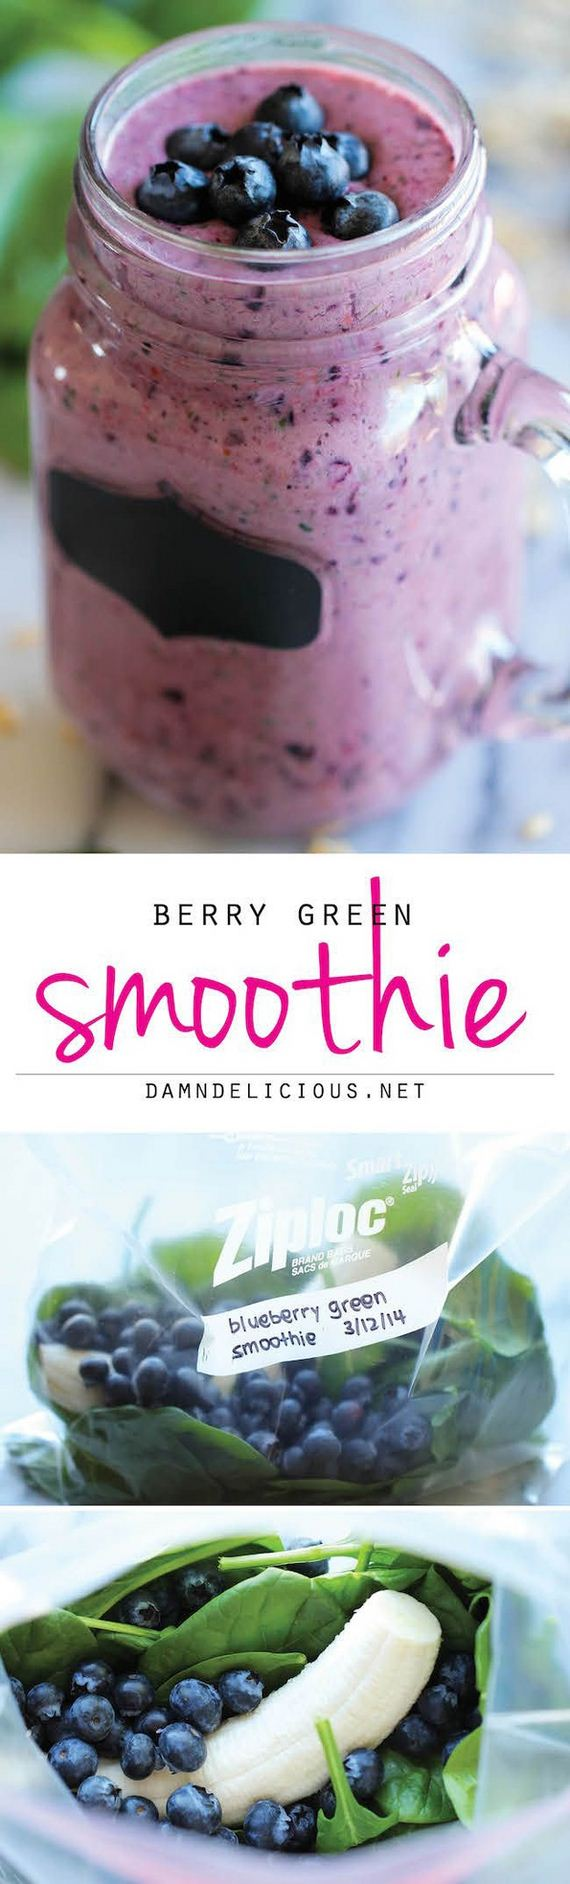 02-healthy_smoothie_recipes